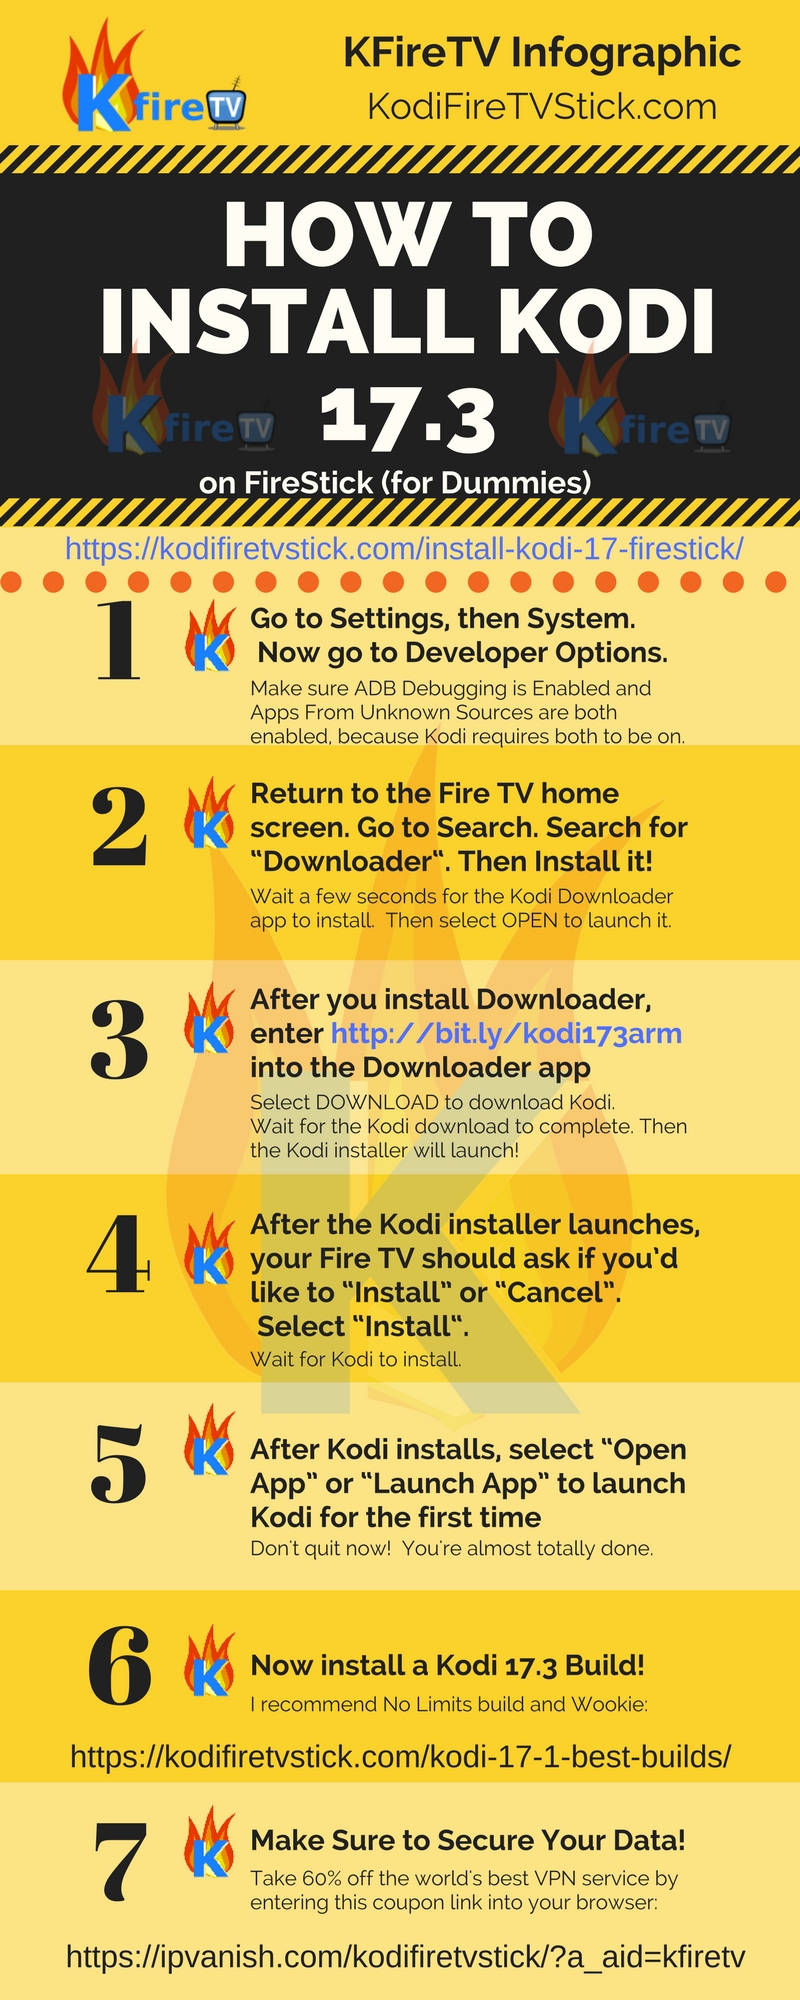 Kodi-17.3-Firestick-Install-Infographic-Plus-No-Limits-Magic-Build-Compressed